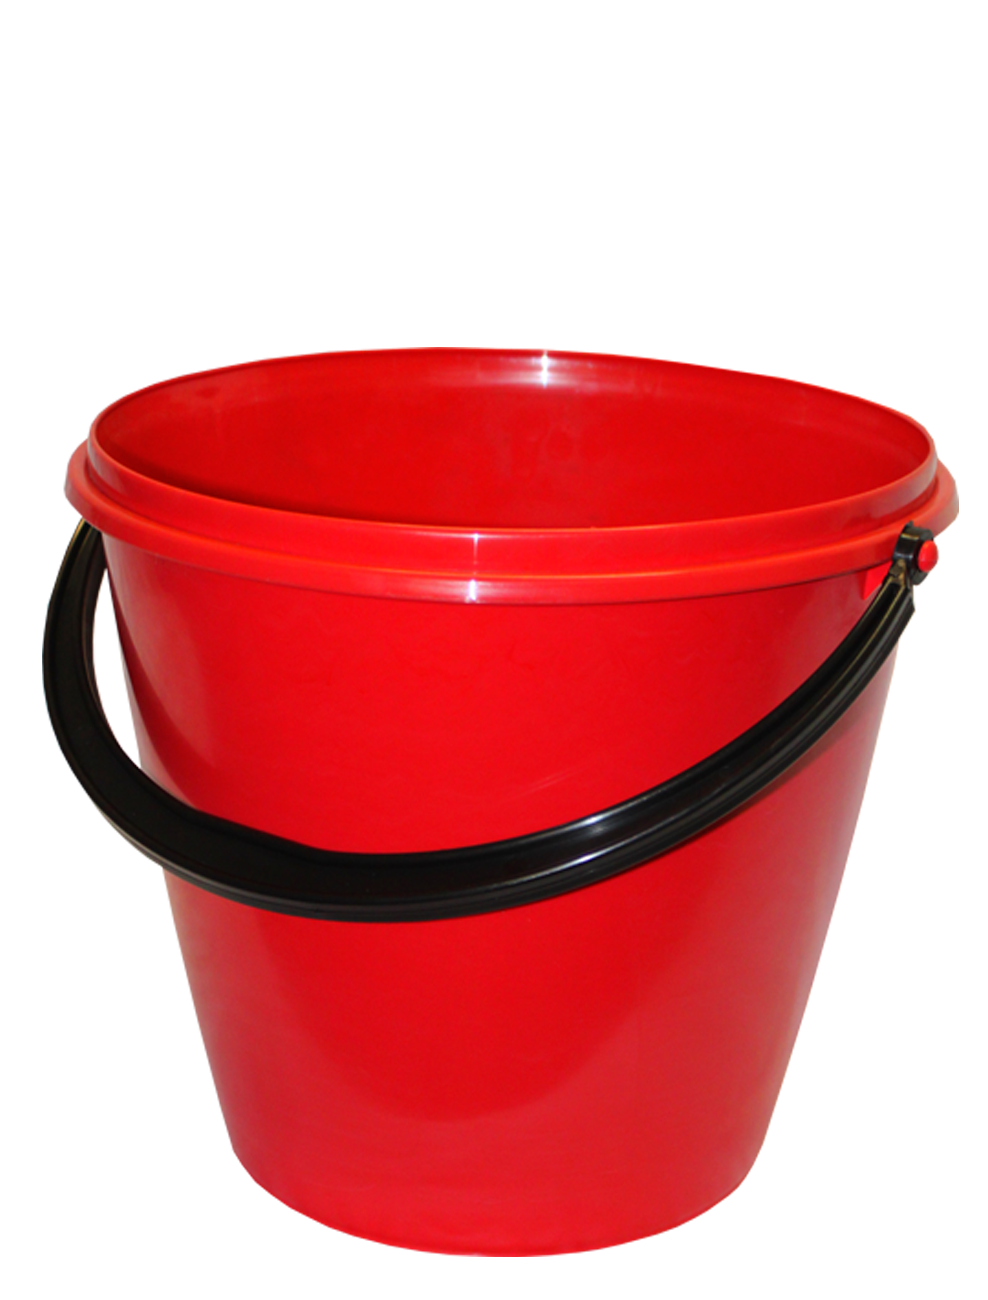 Red PLastic Bucket PNG Image